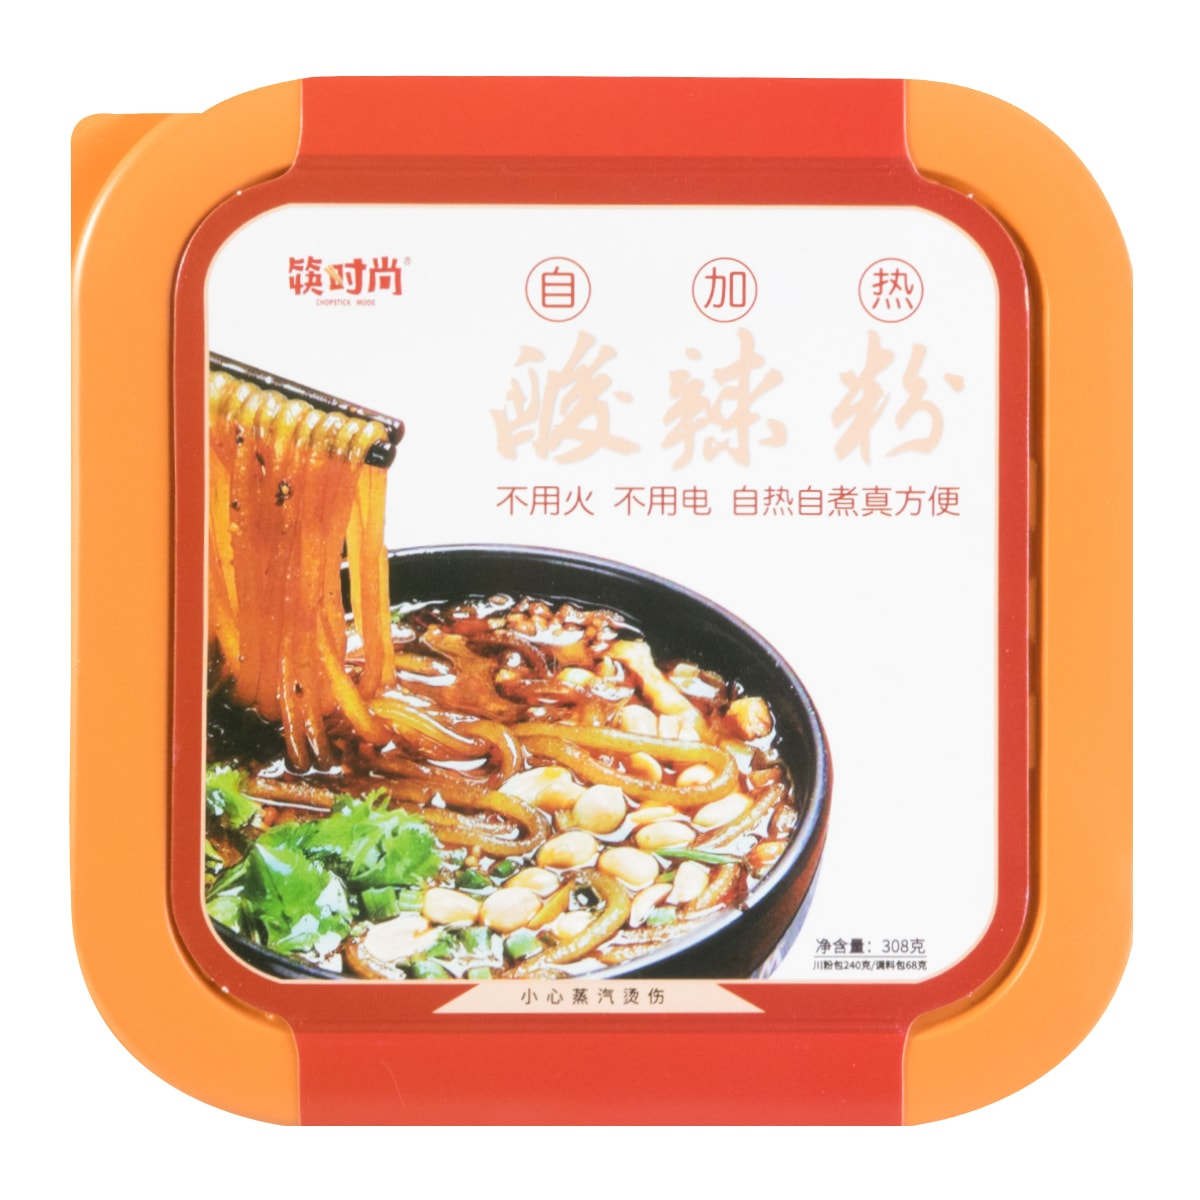 KUAISHISHANG Sour Spicy Instant Noodles 308g